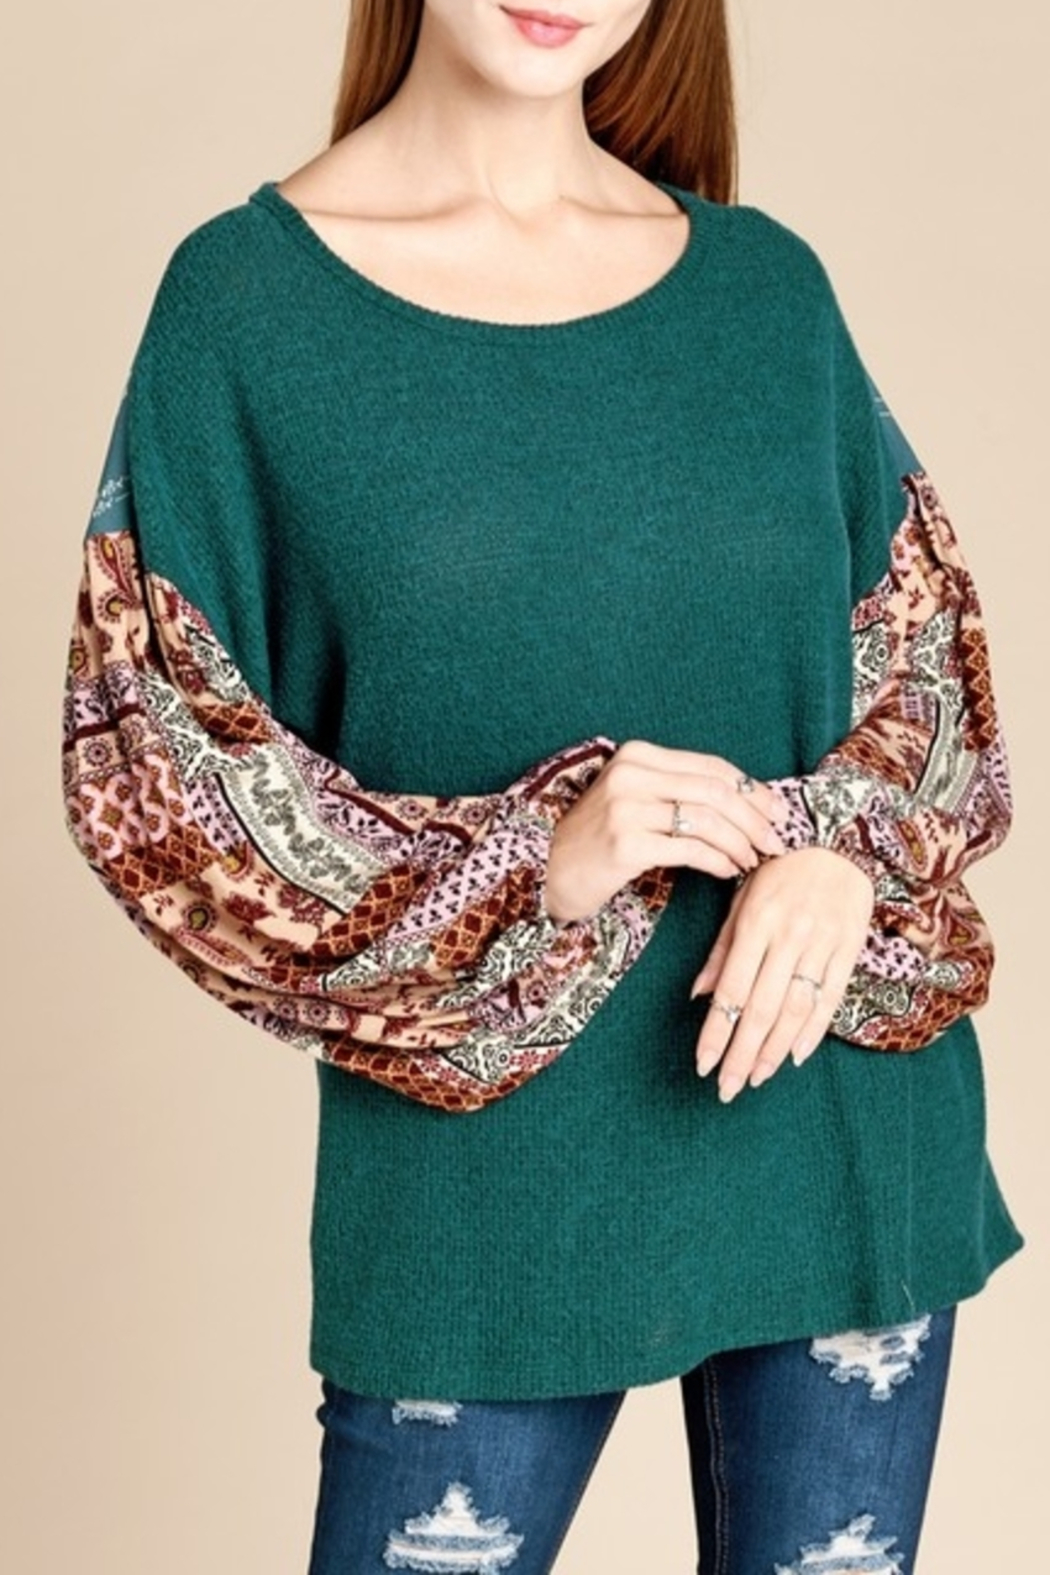 9aefdfb3e10699 Oddi Pattern Princess top from Mississippi by Exit 16 - Diamondhead ...